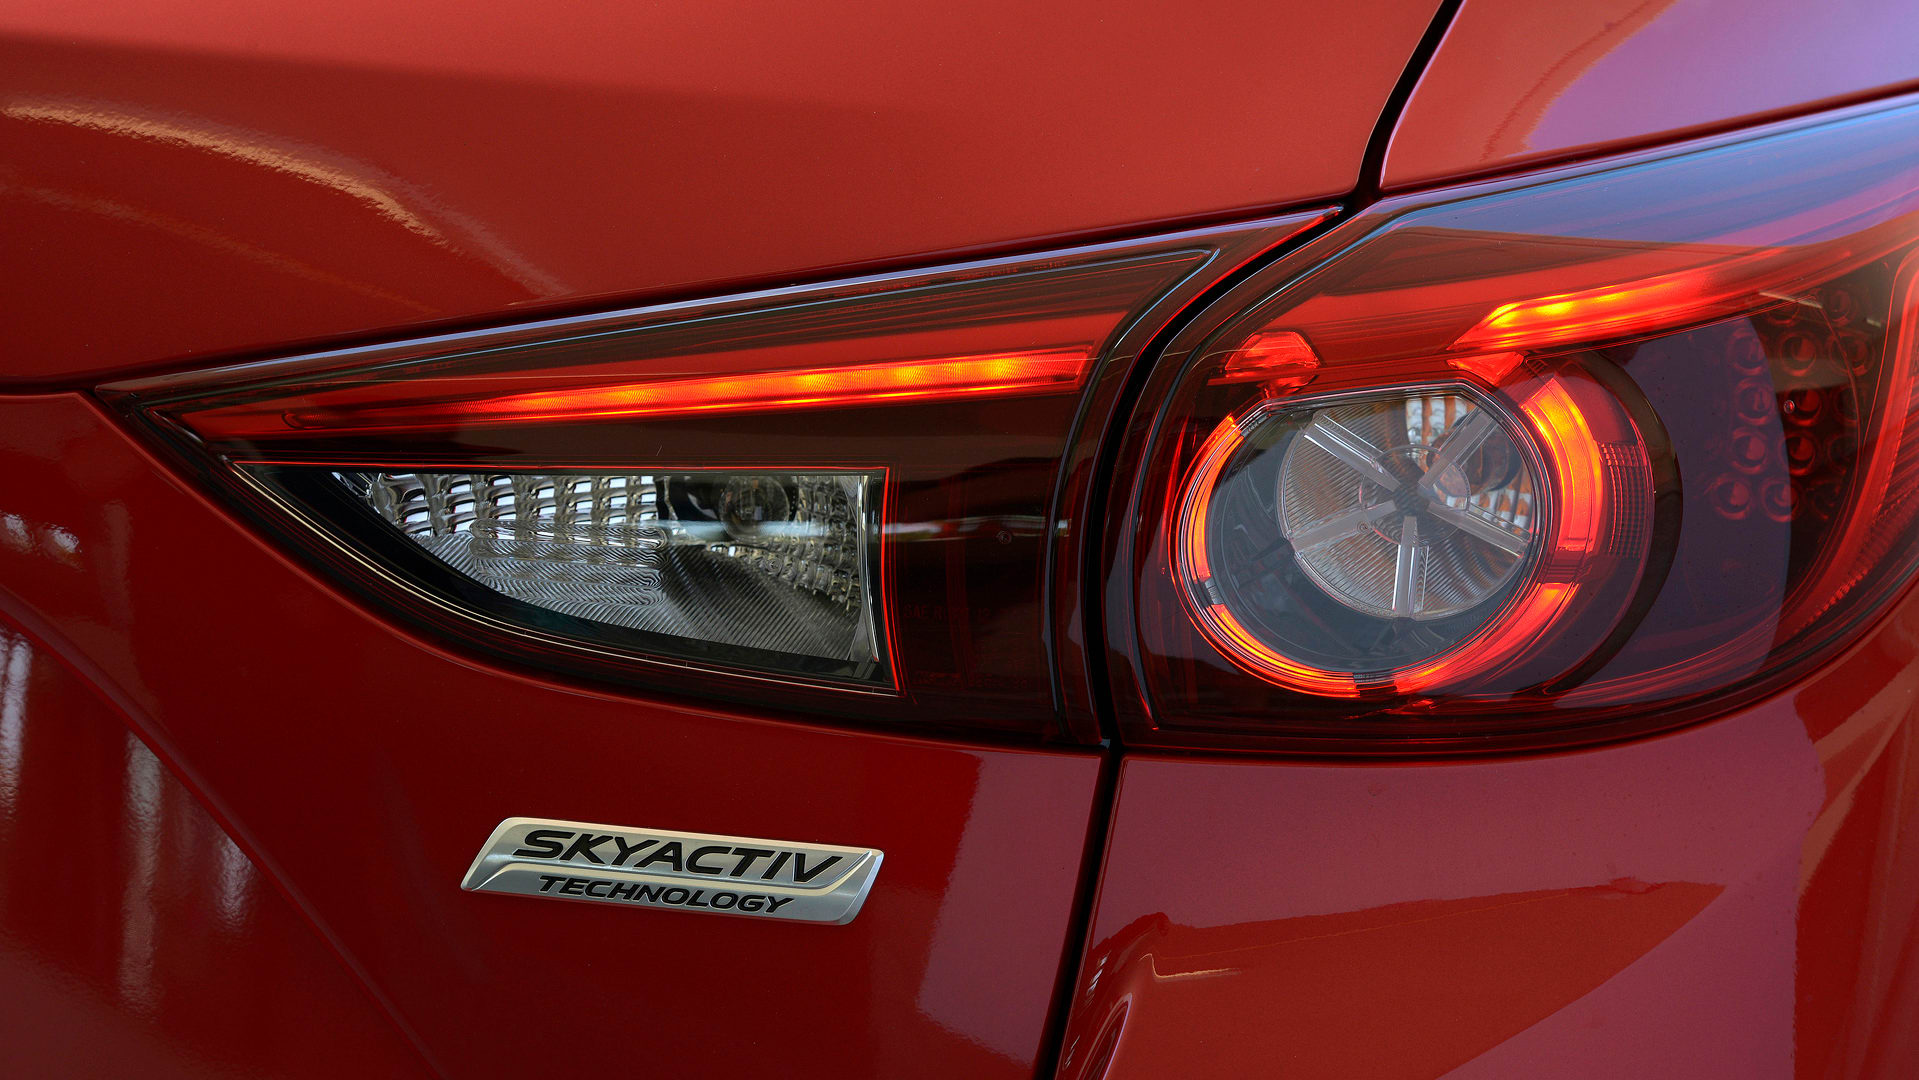 Photo of Mazda introduces: A new and highly efficient diesel engine - which works on gasoline